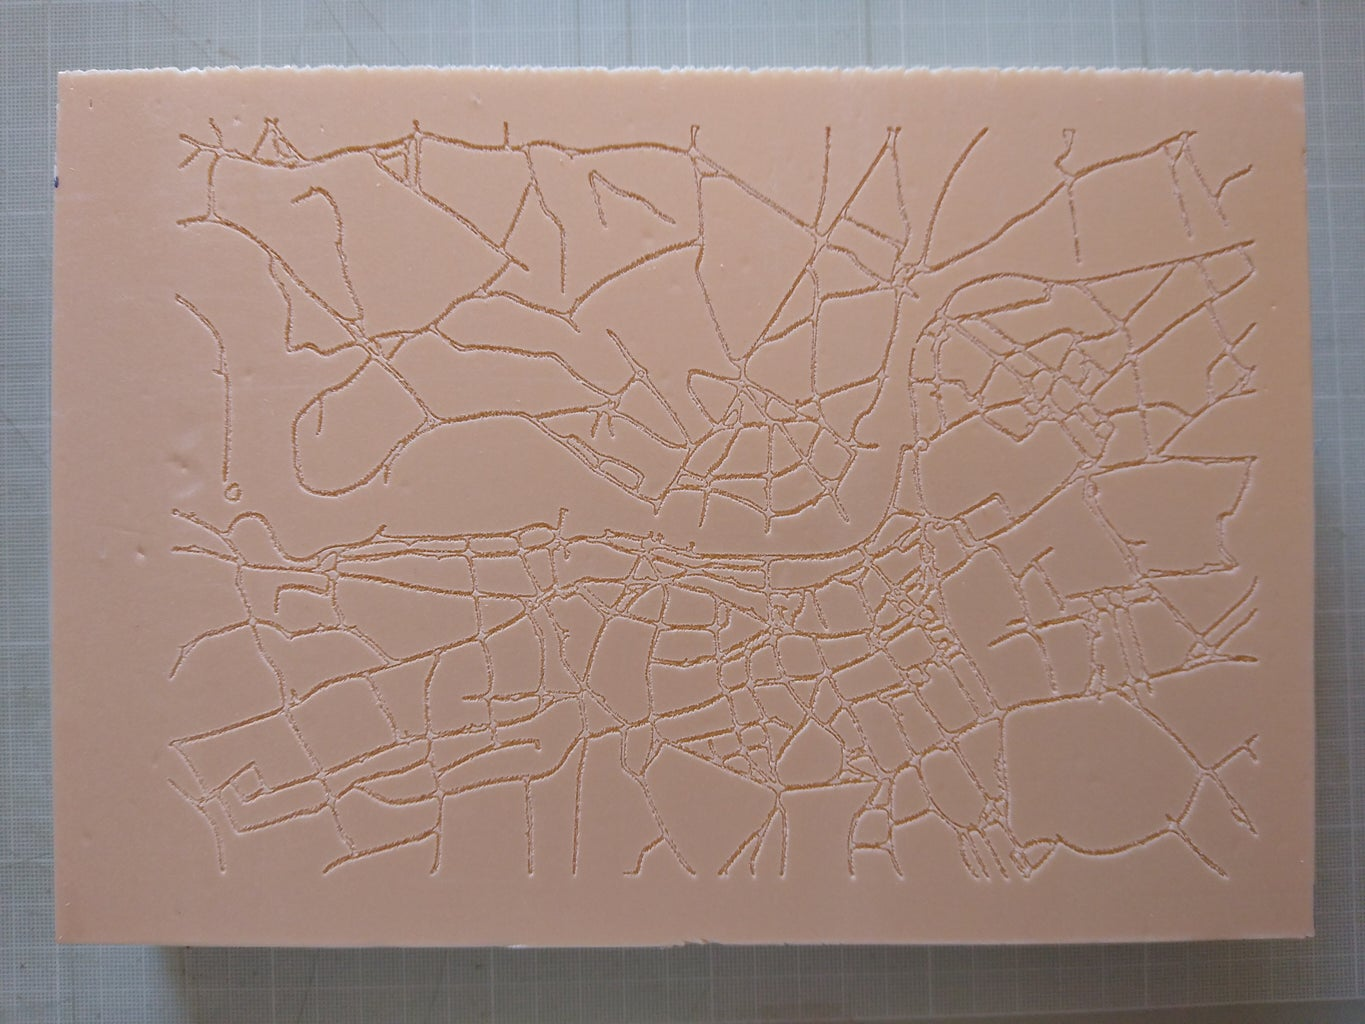 Engrave Streets and River on Extruded Polystyrene Panel